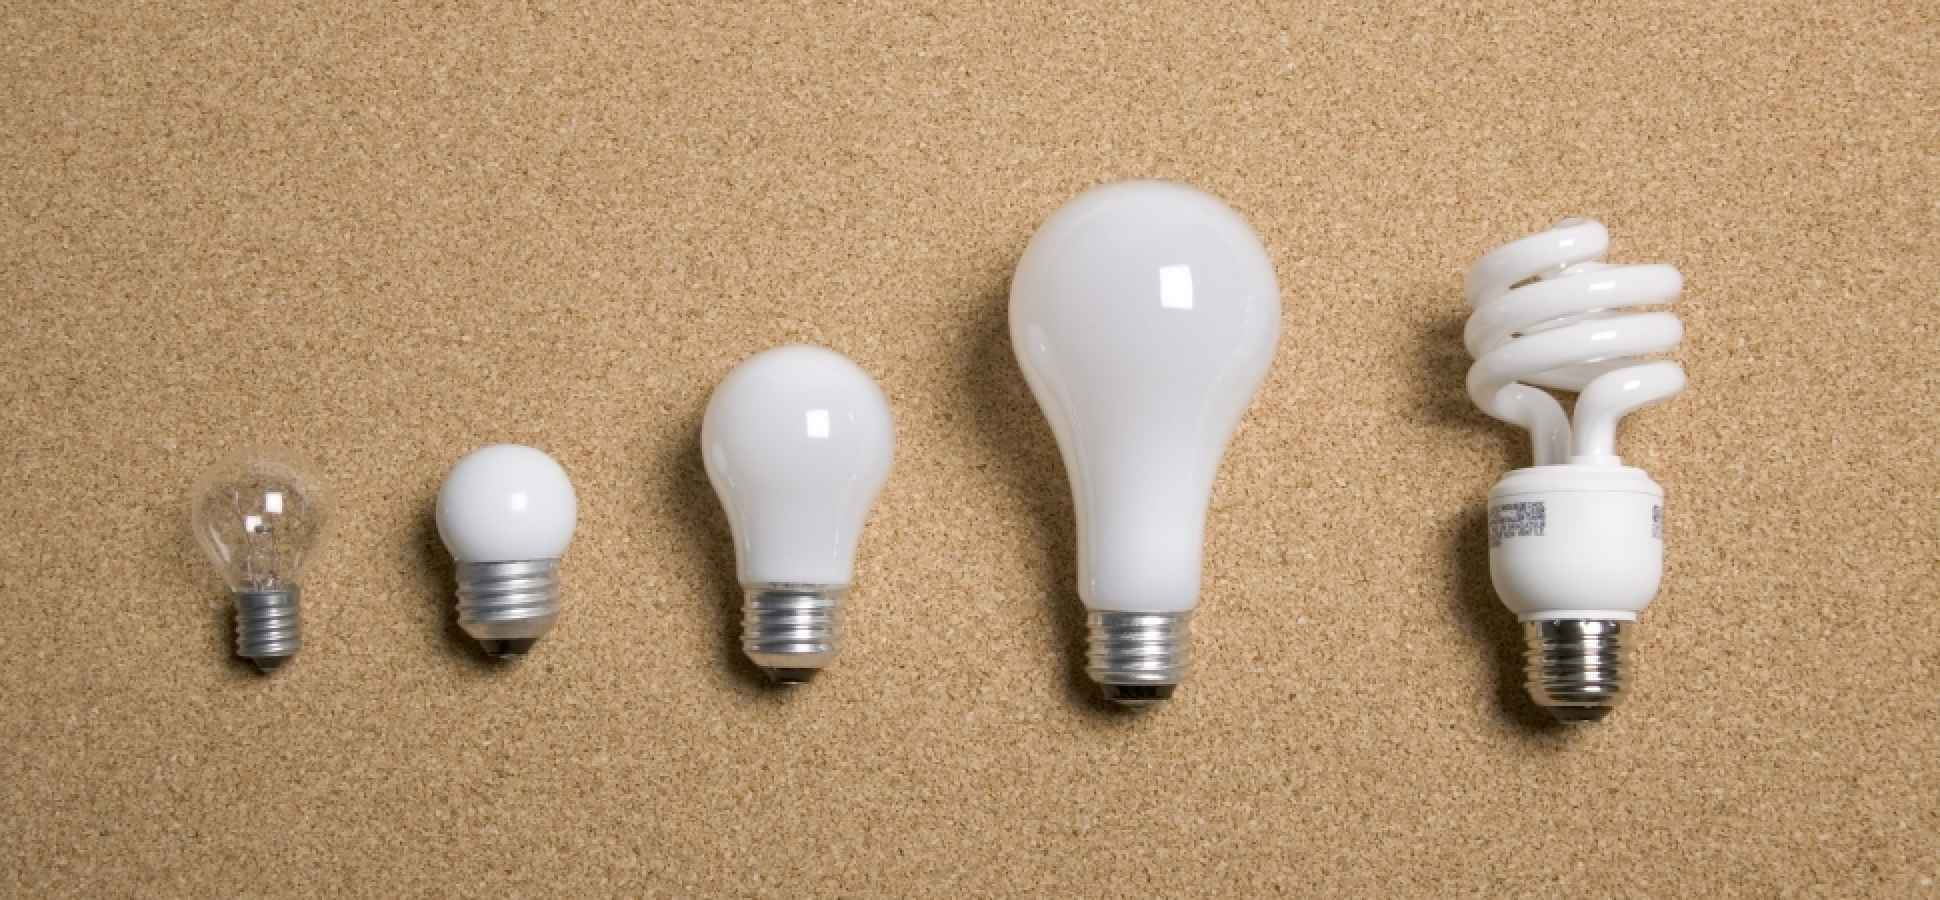 3 Principles of Innovation for Startups and Small Businesses